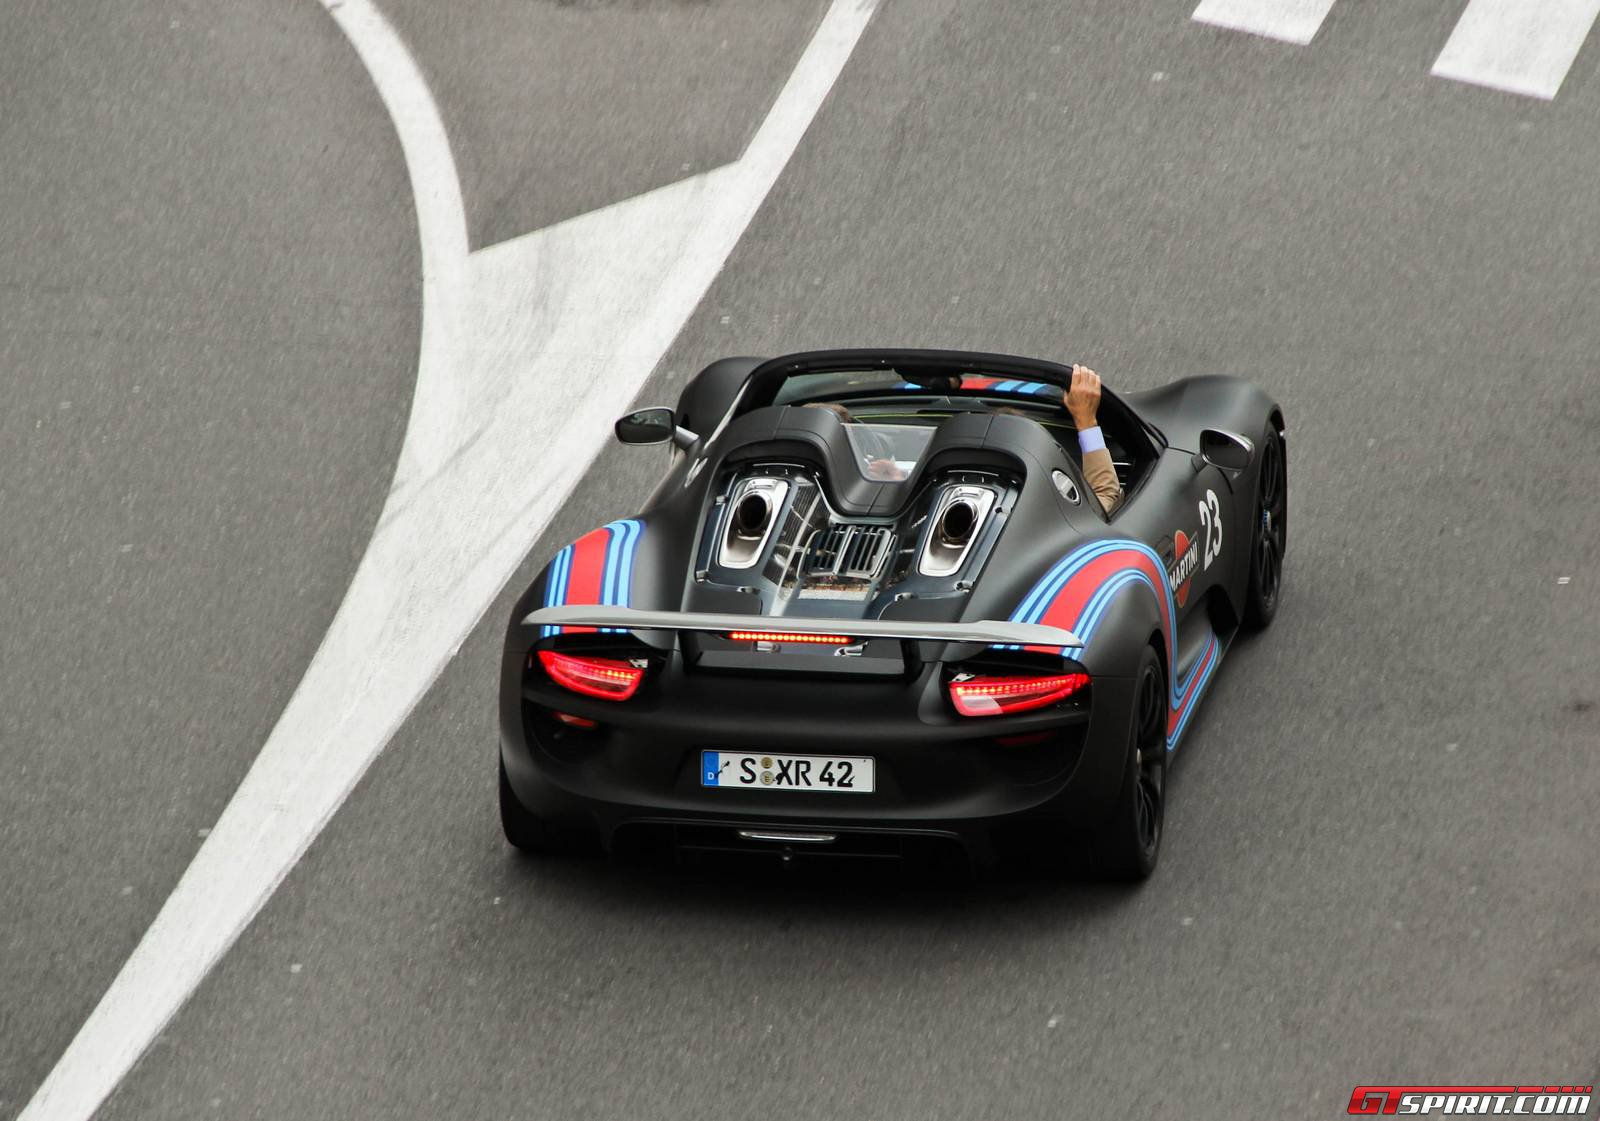 the official teamspeed porsche 918 picture information. Black Bedroom Furniture Sets. Home Design Ideas